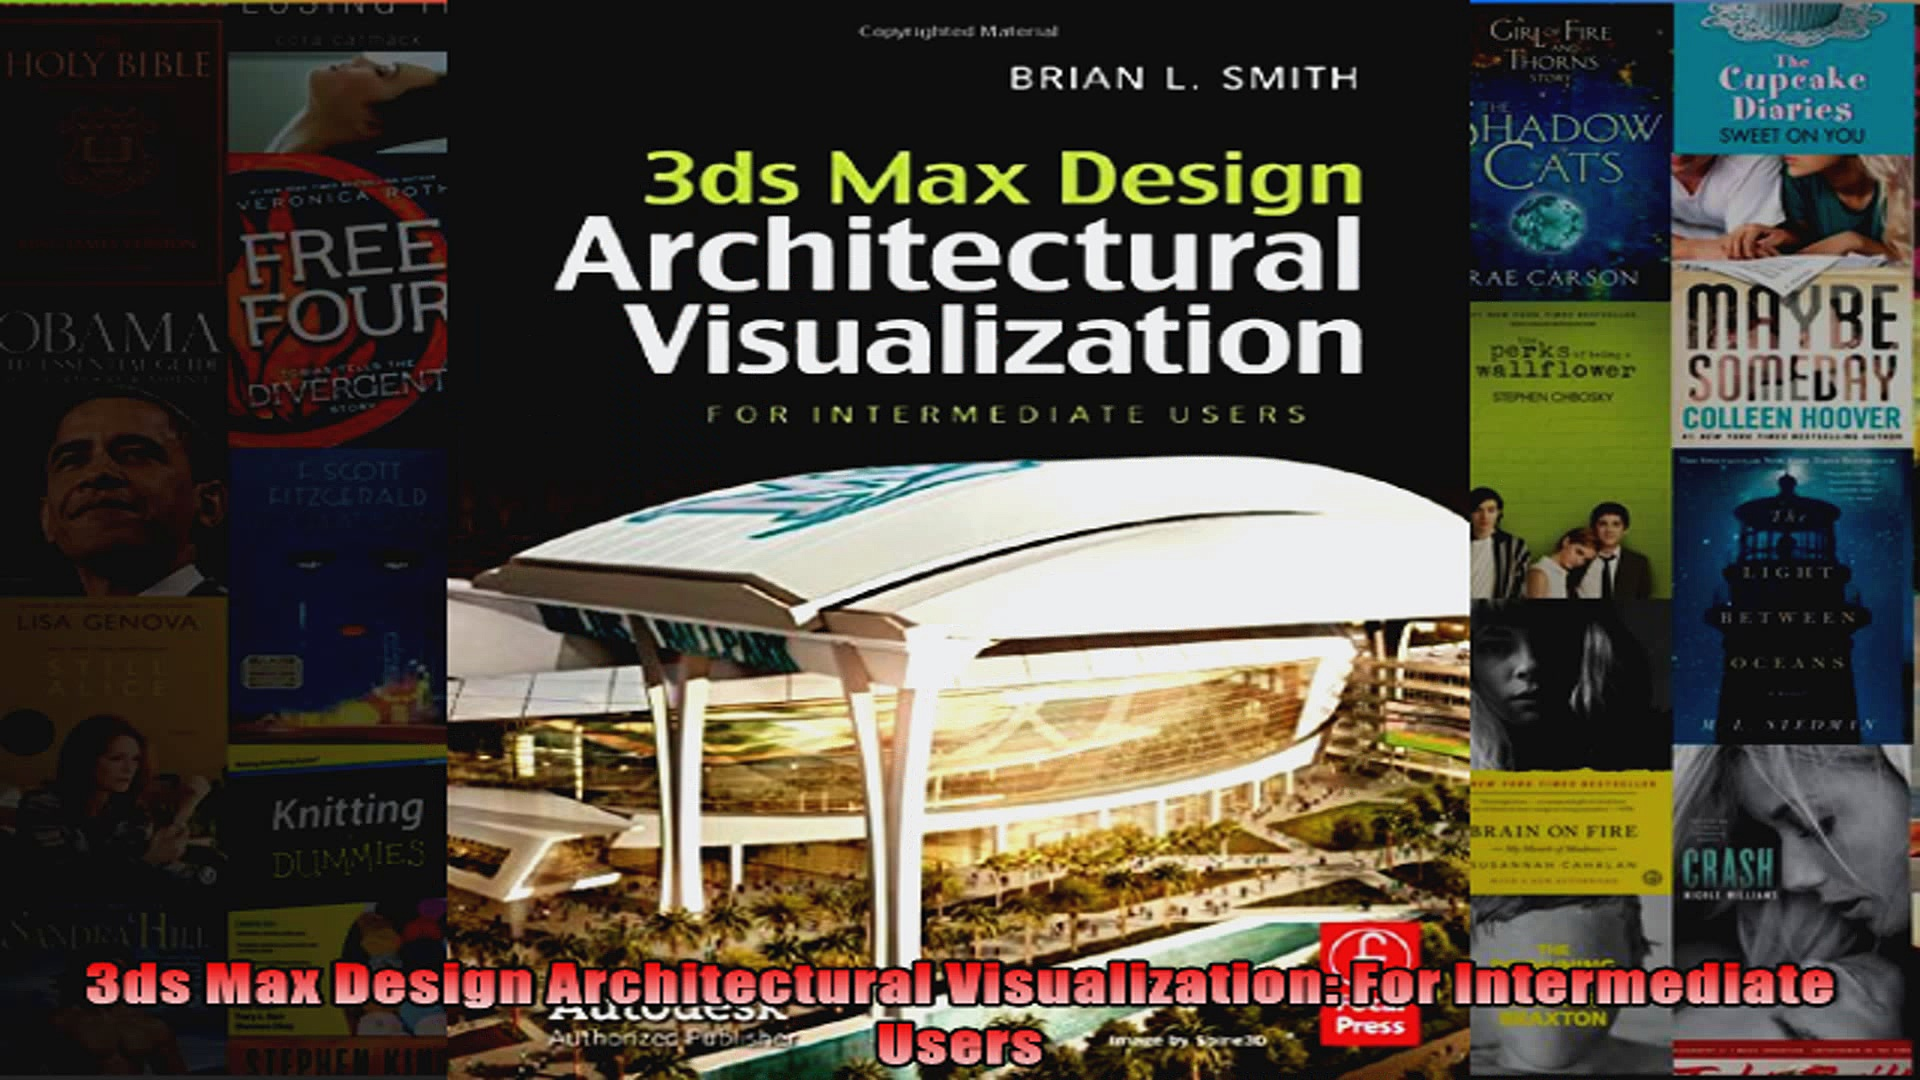 3ds Max Design Architectural Visualization For Intermediate Users